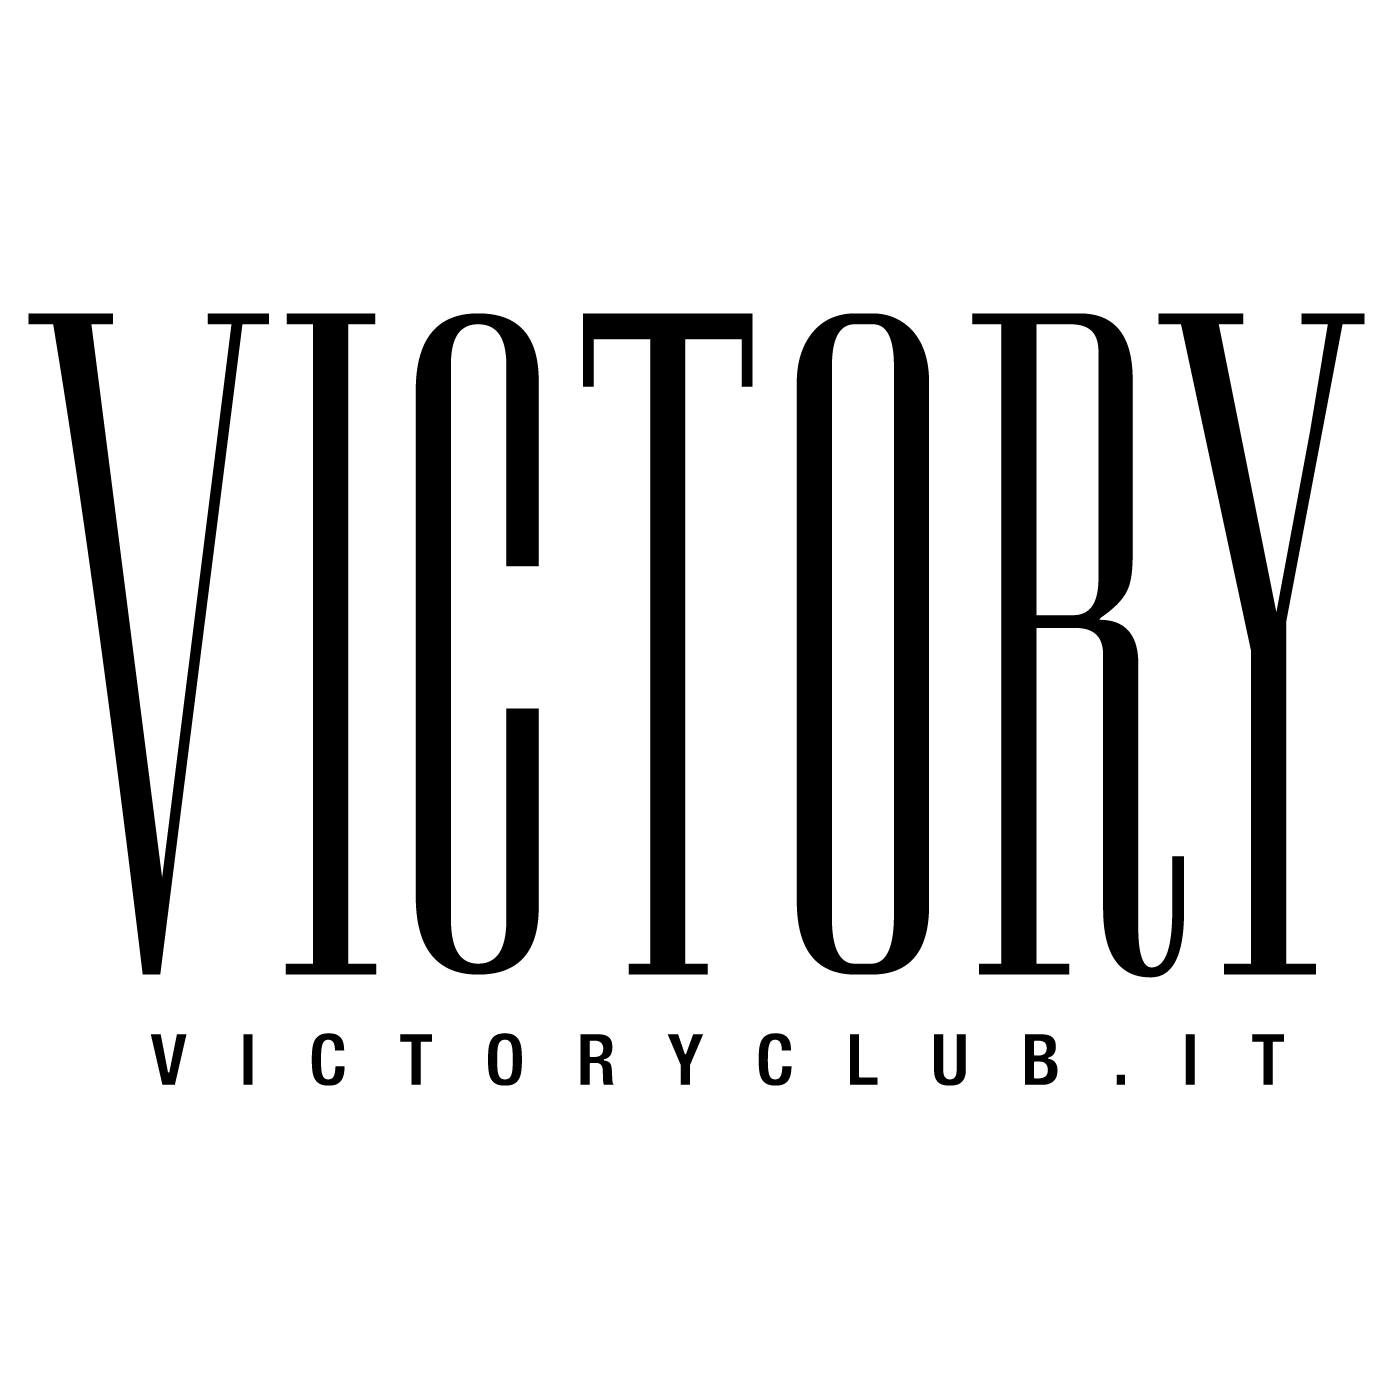 Victory Club House